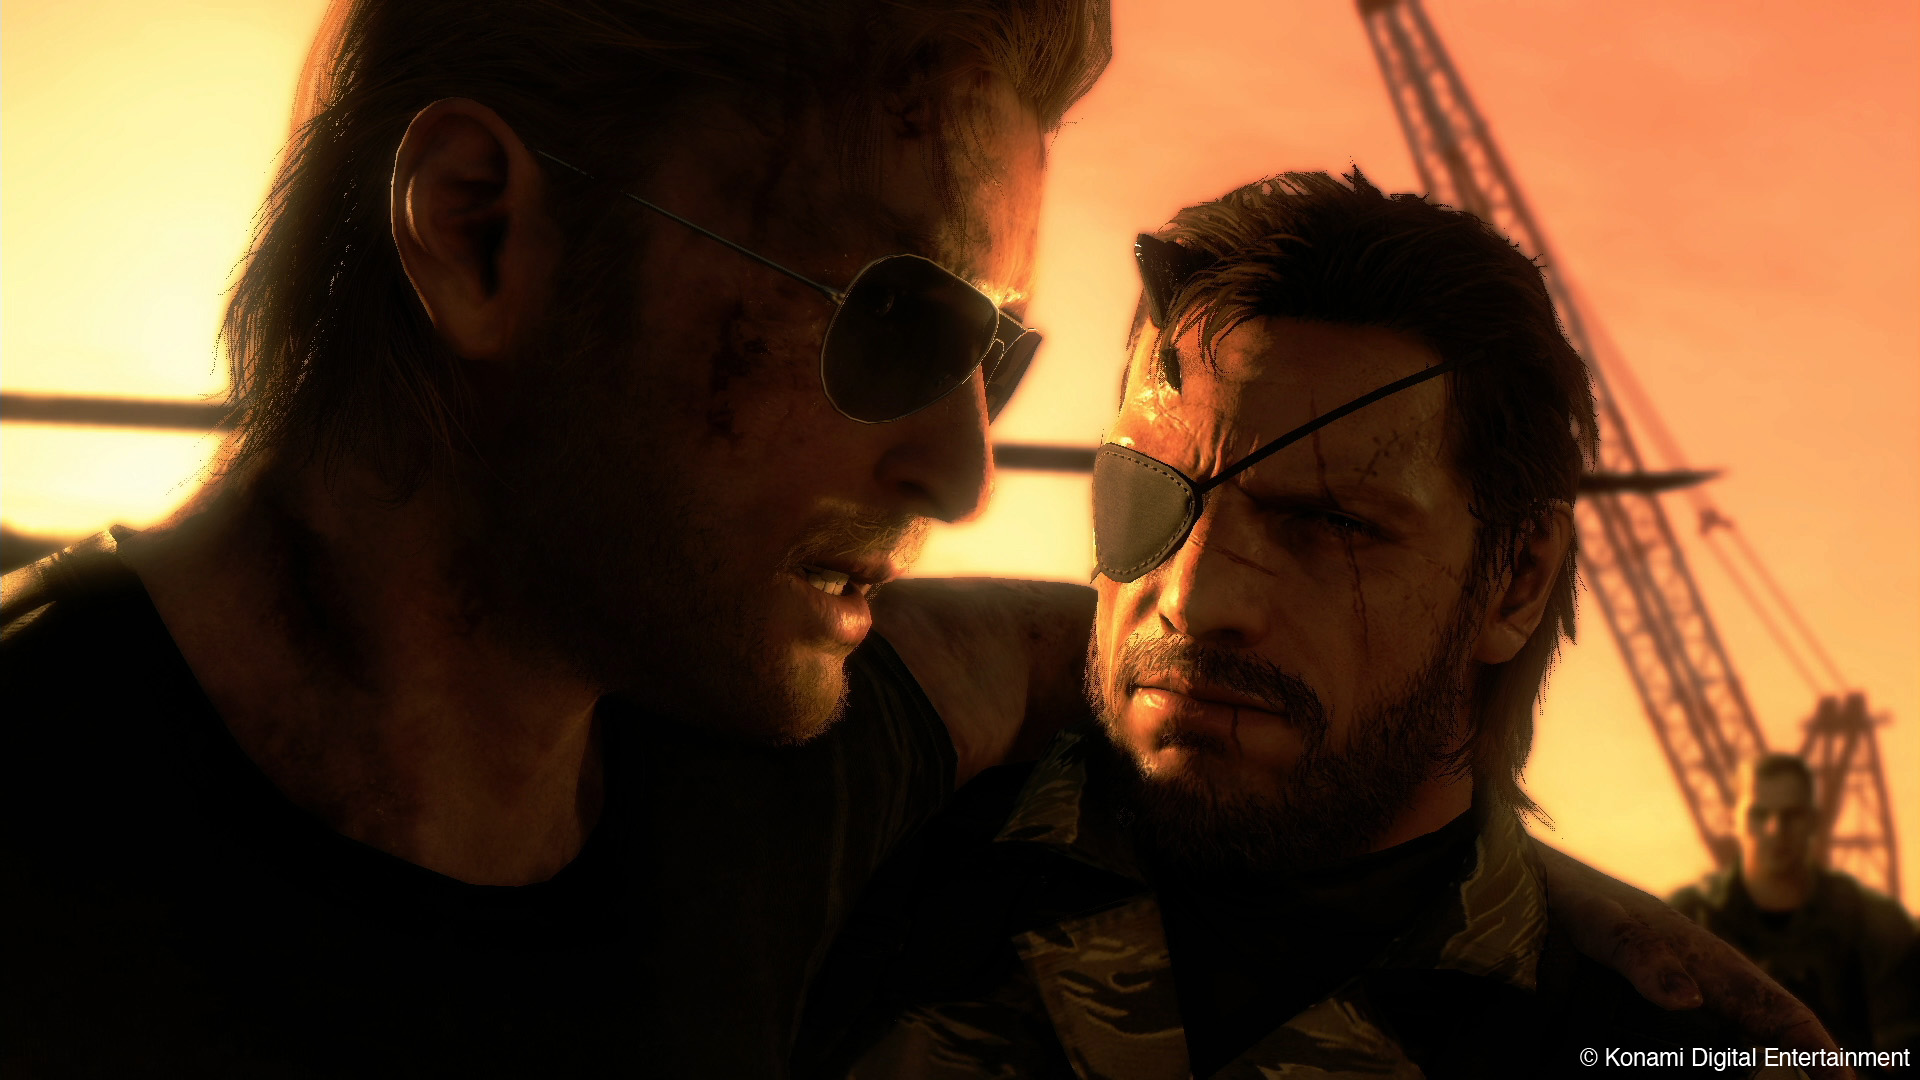 Top 5 Things I Dislike About Metal Gear Solid V Based On What Has Been Revealed So Far A secret weapon we wield, out of sight. metal gear solid v